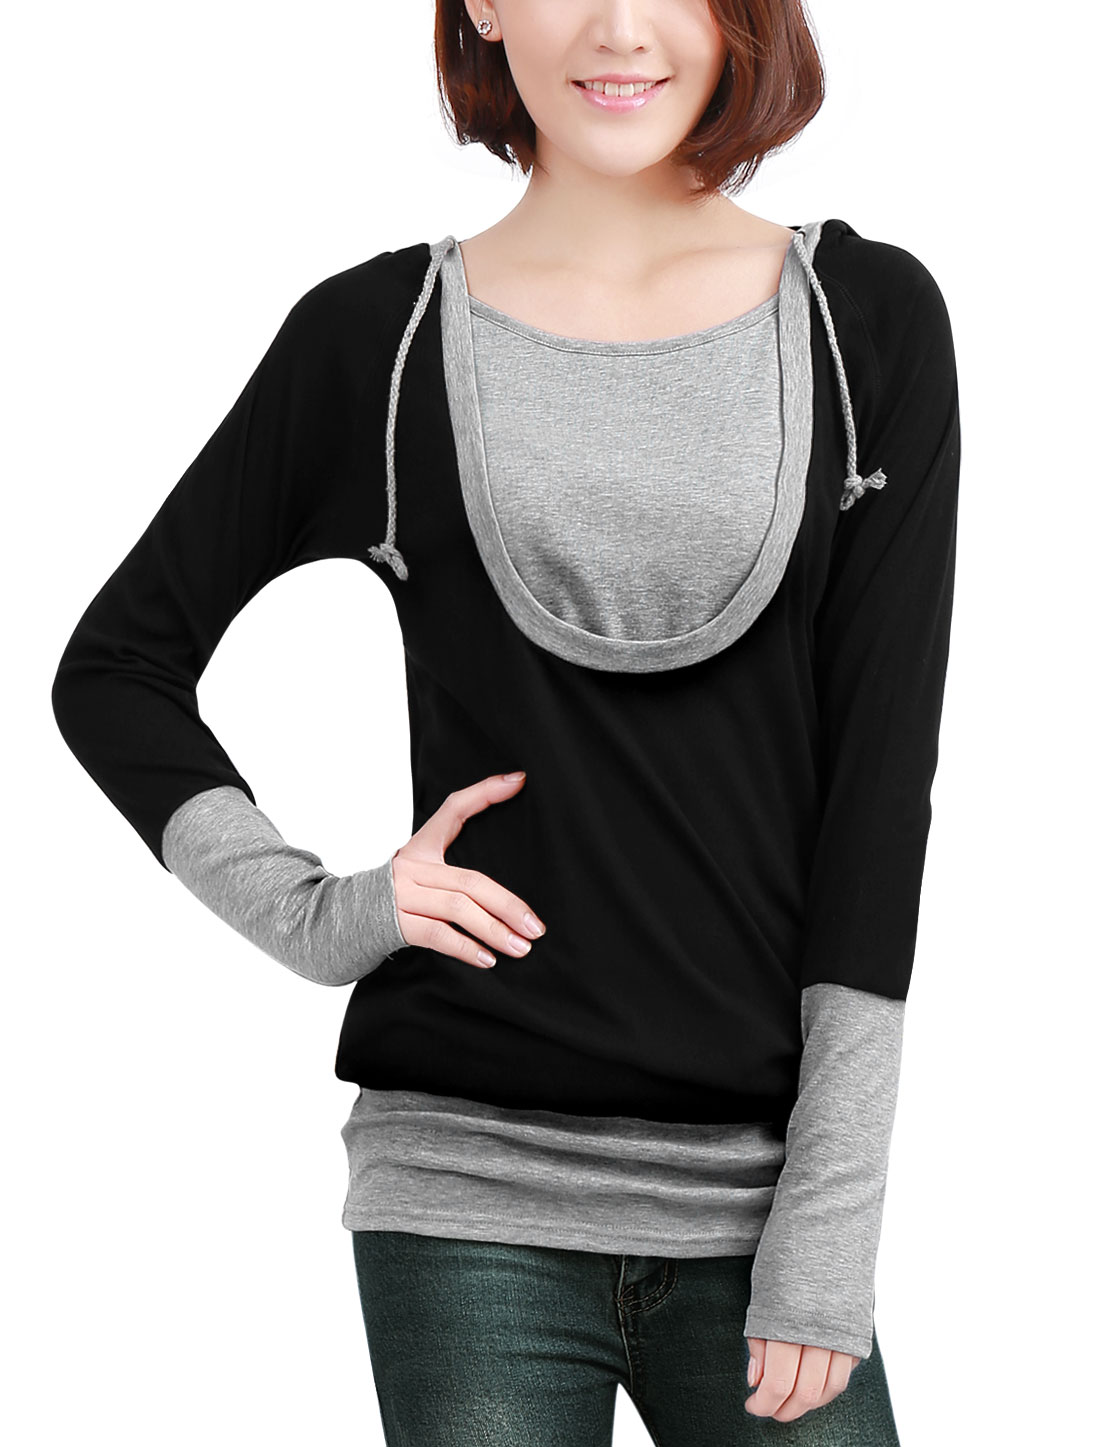 Black Gray Drawstring String Hooded Long Sleeve Shirt XS for Lady